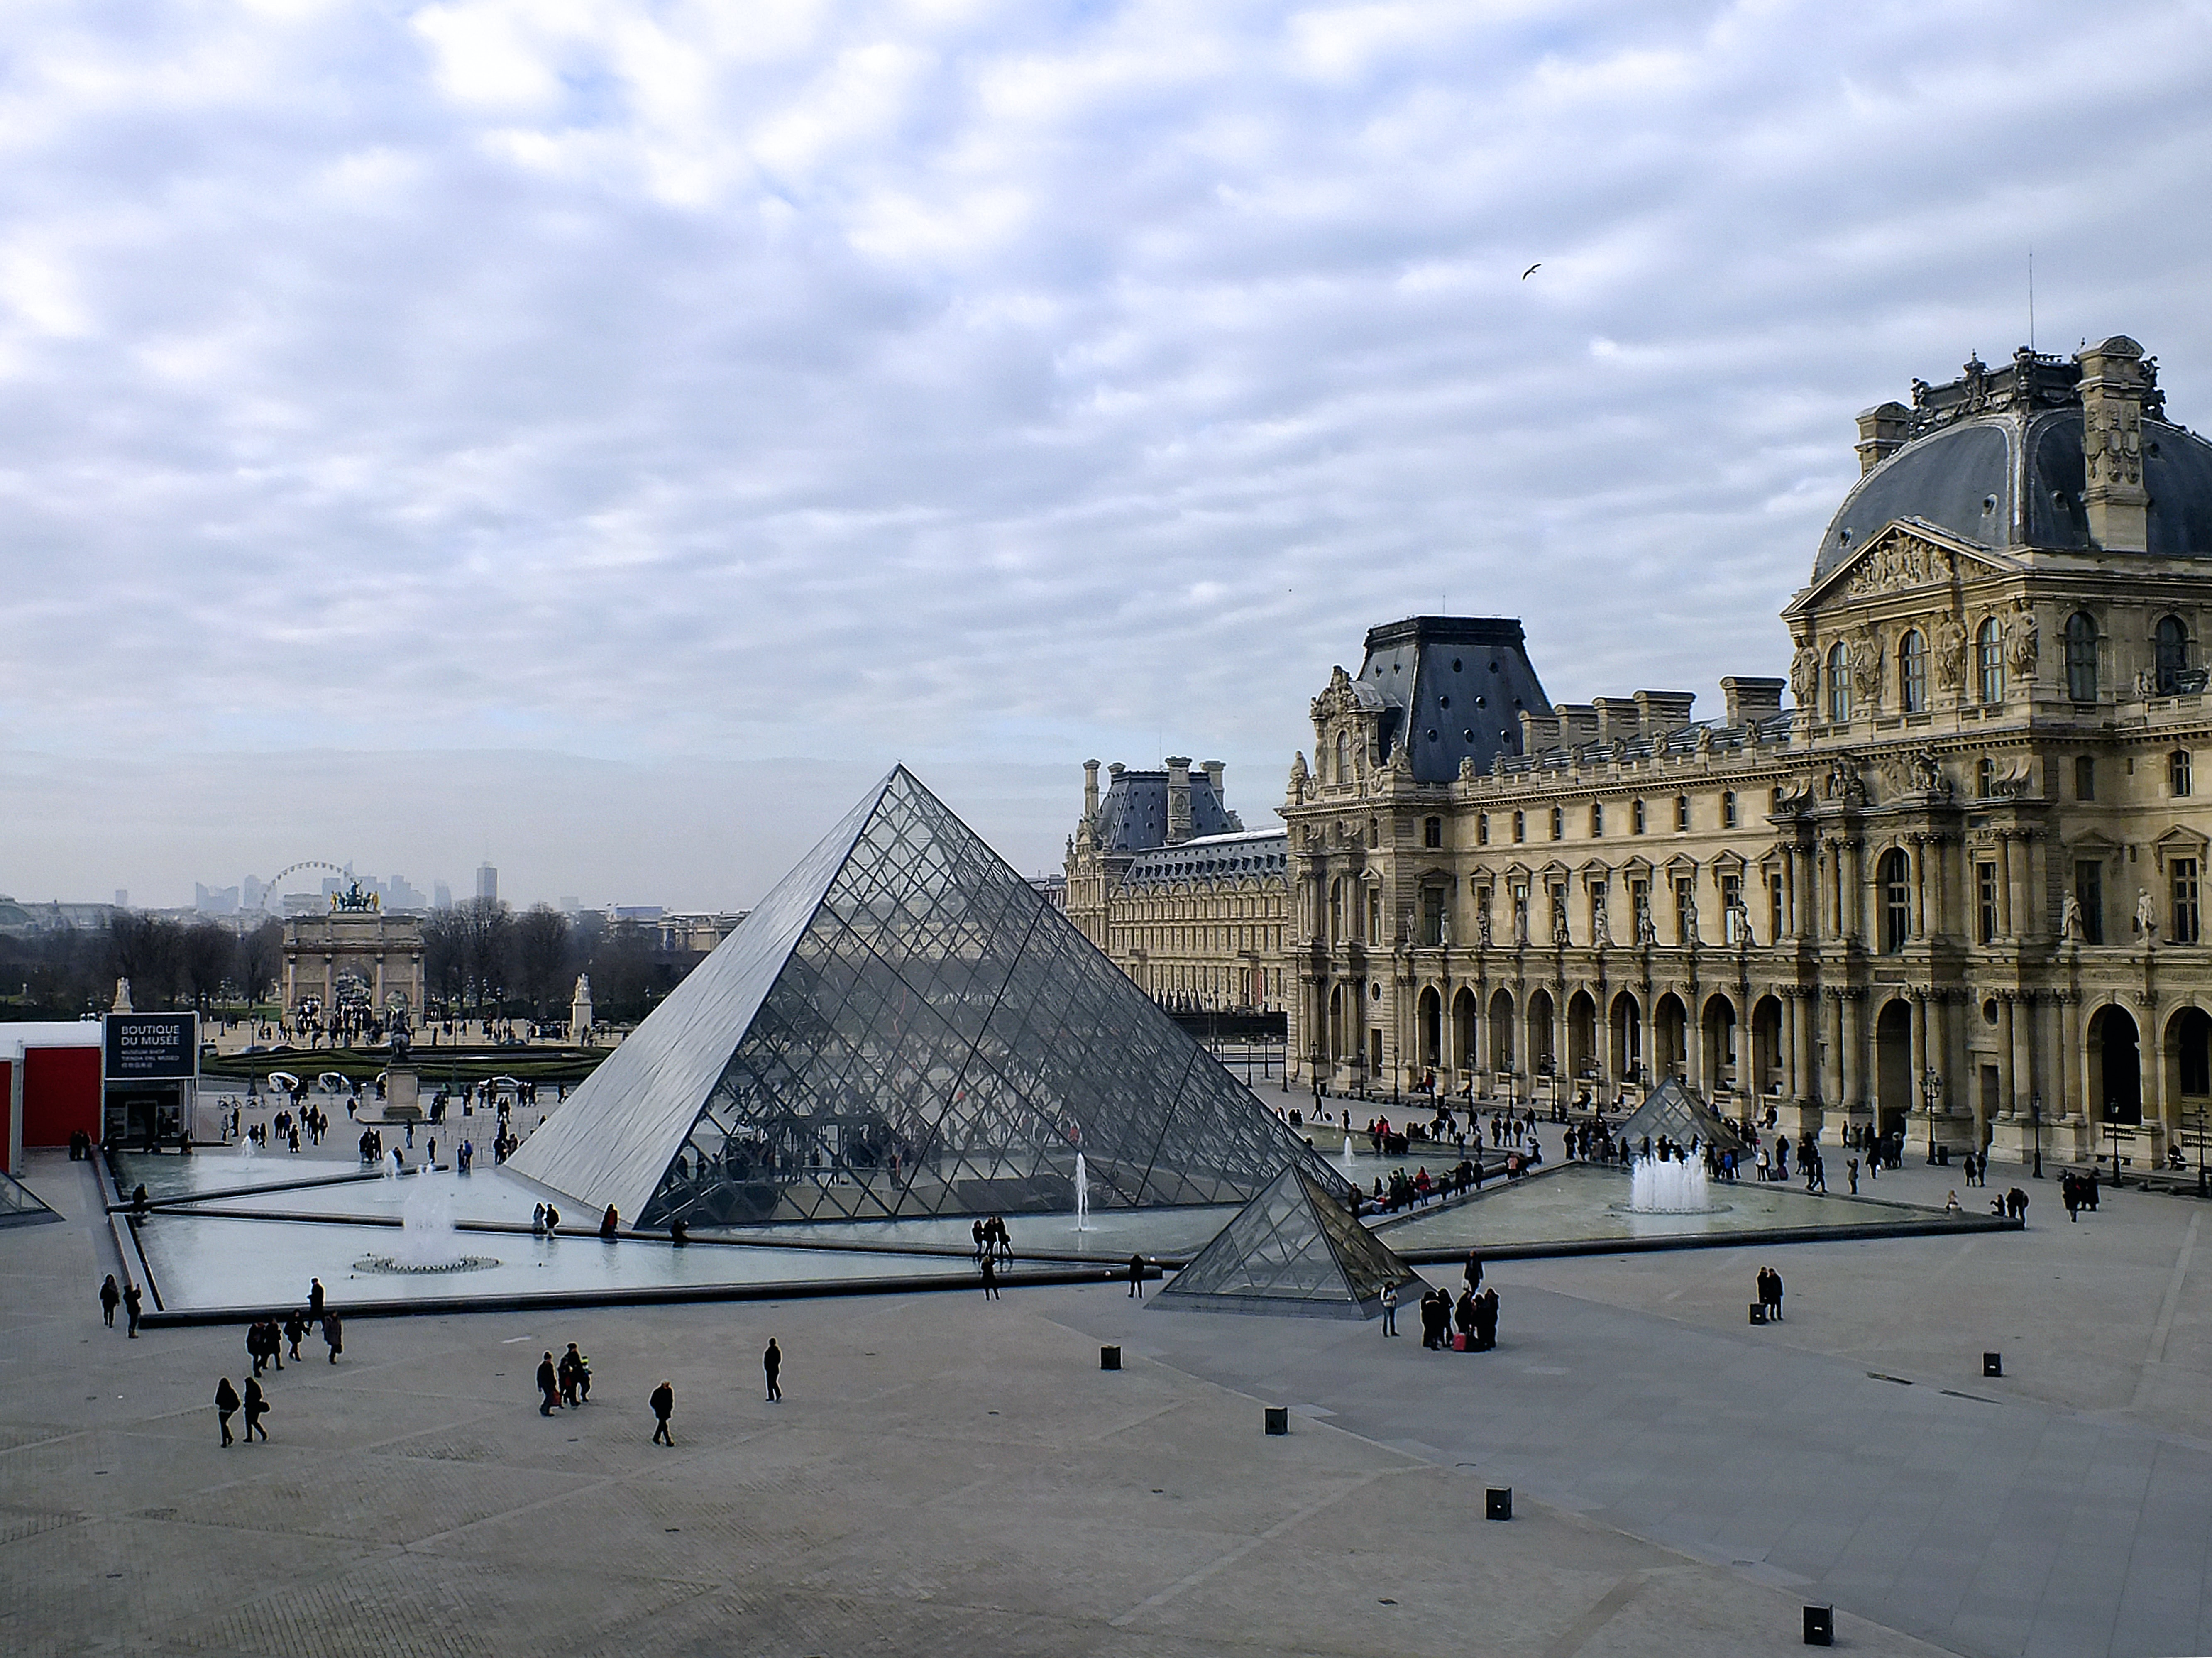 Tourists with the landmark pyramid outside the Louvre museum in Paris, France.